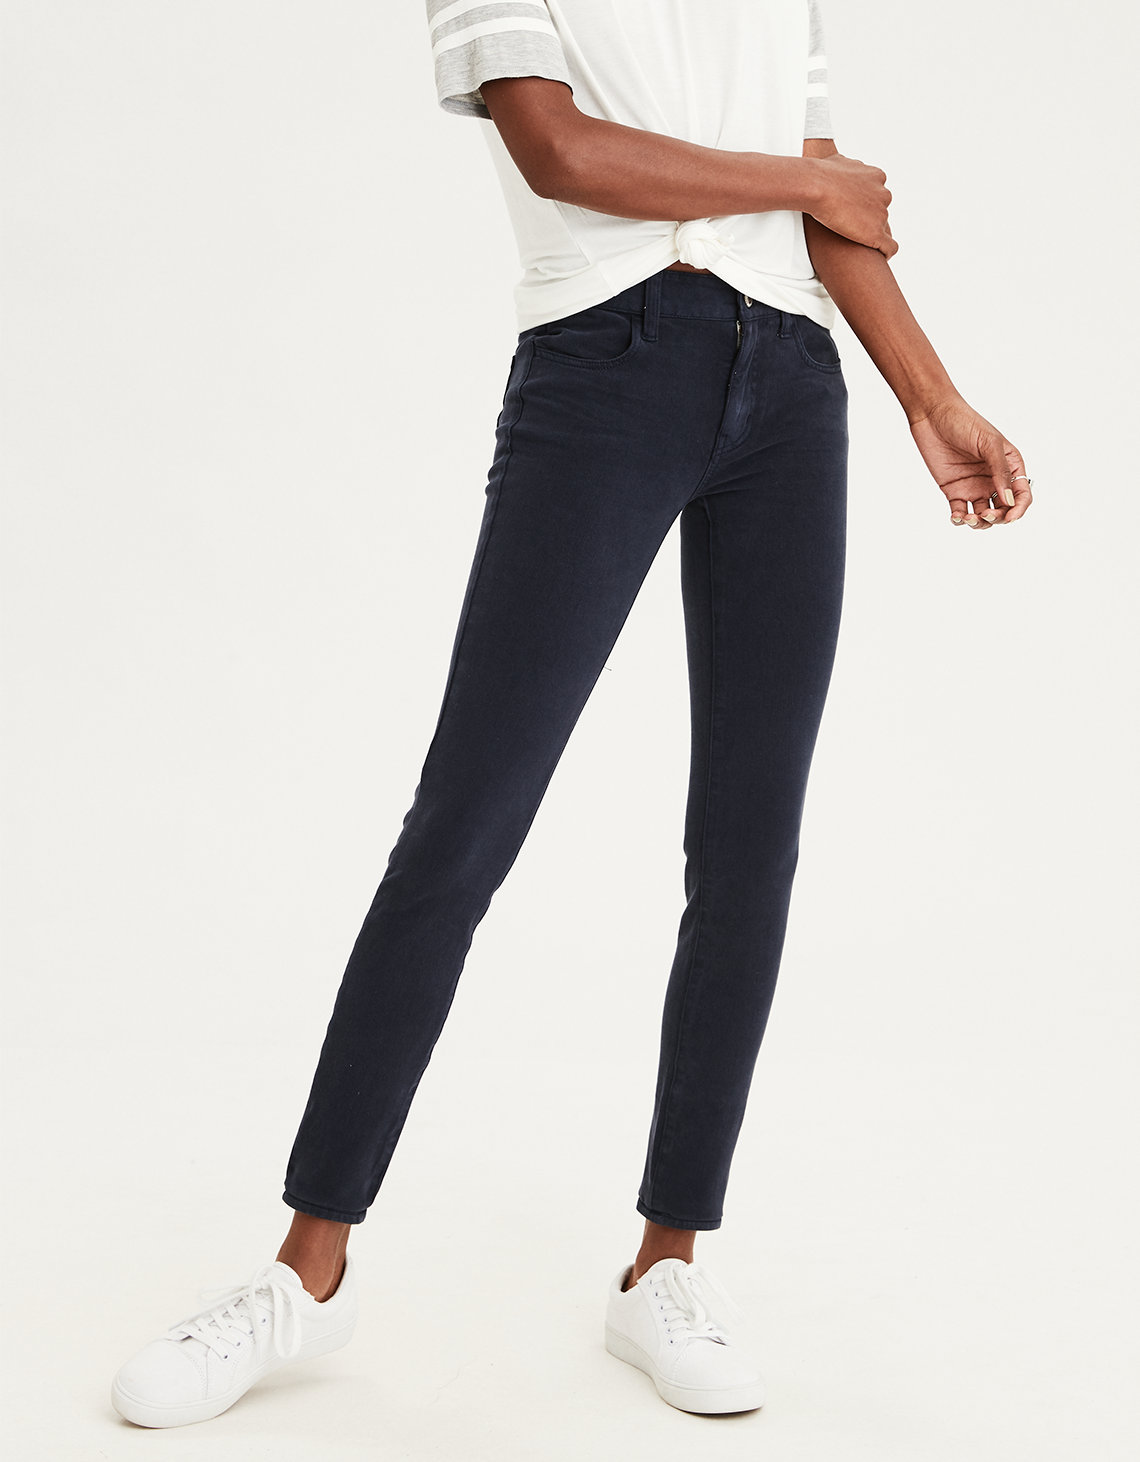 AE 360 Ne(X)T Level Jegging - Navy